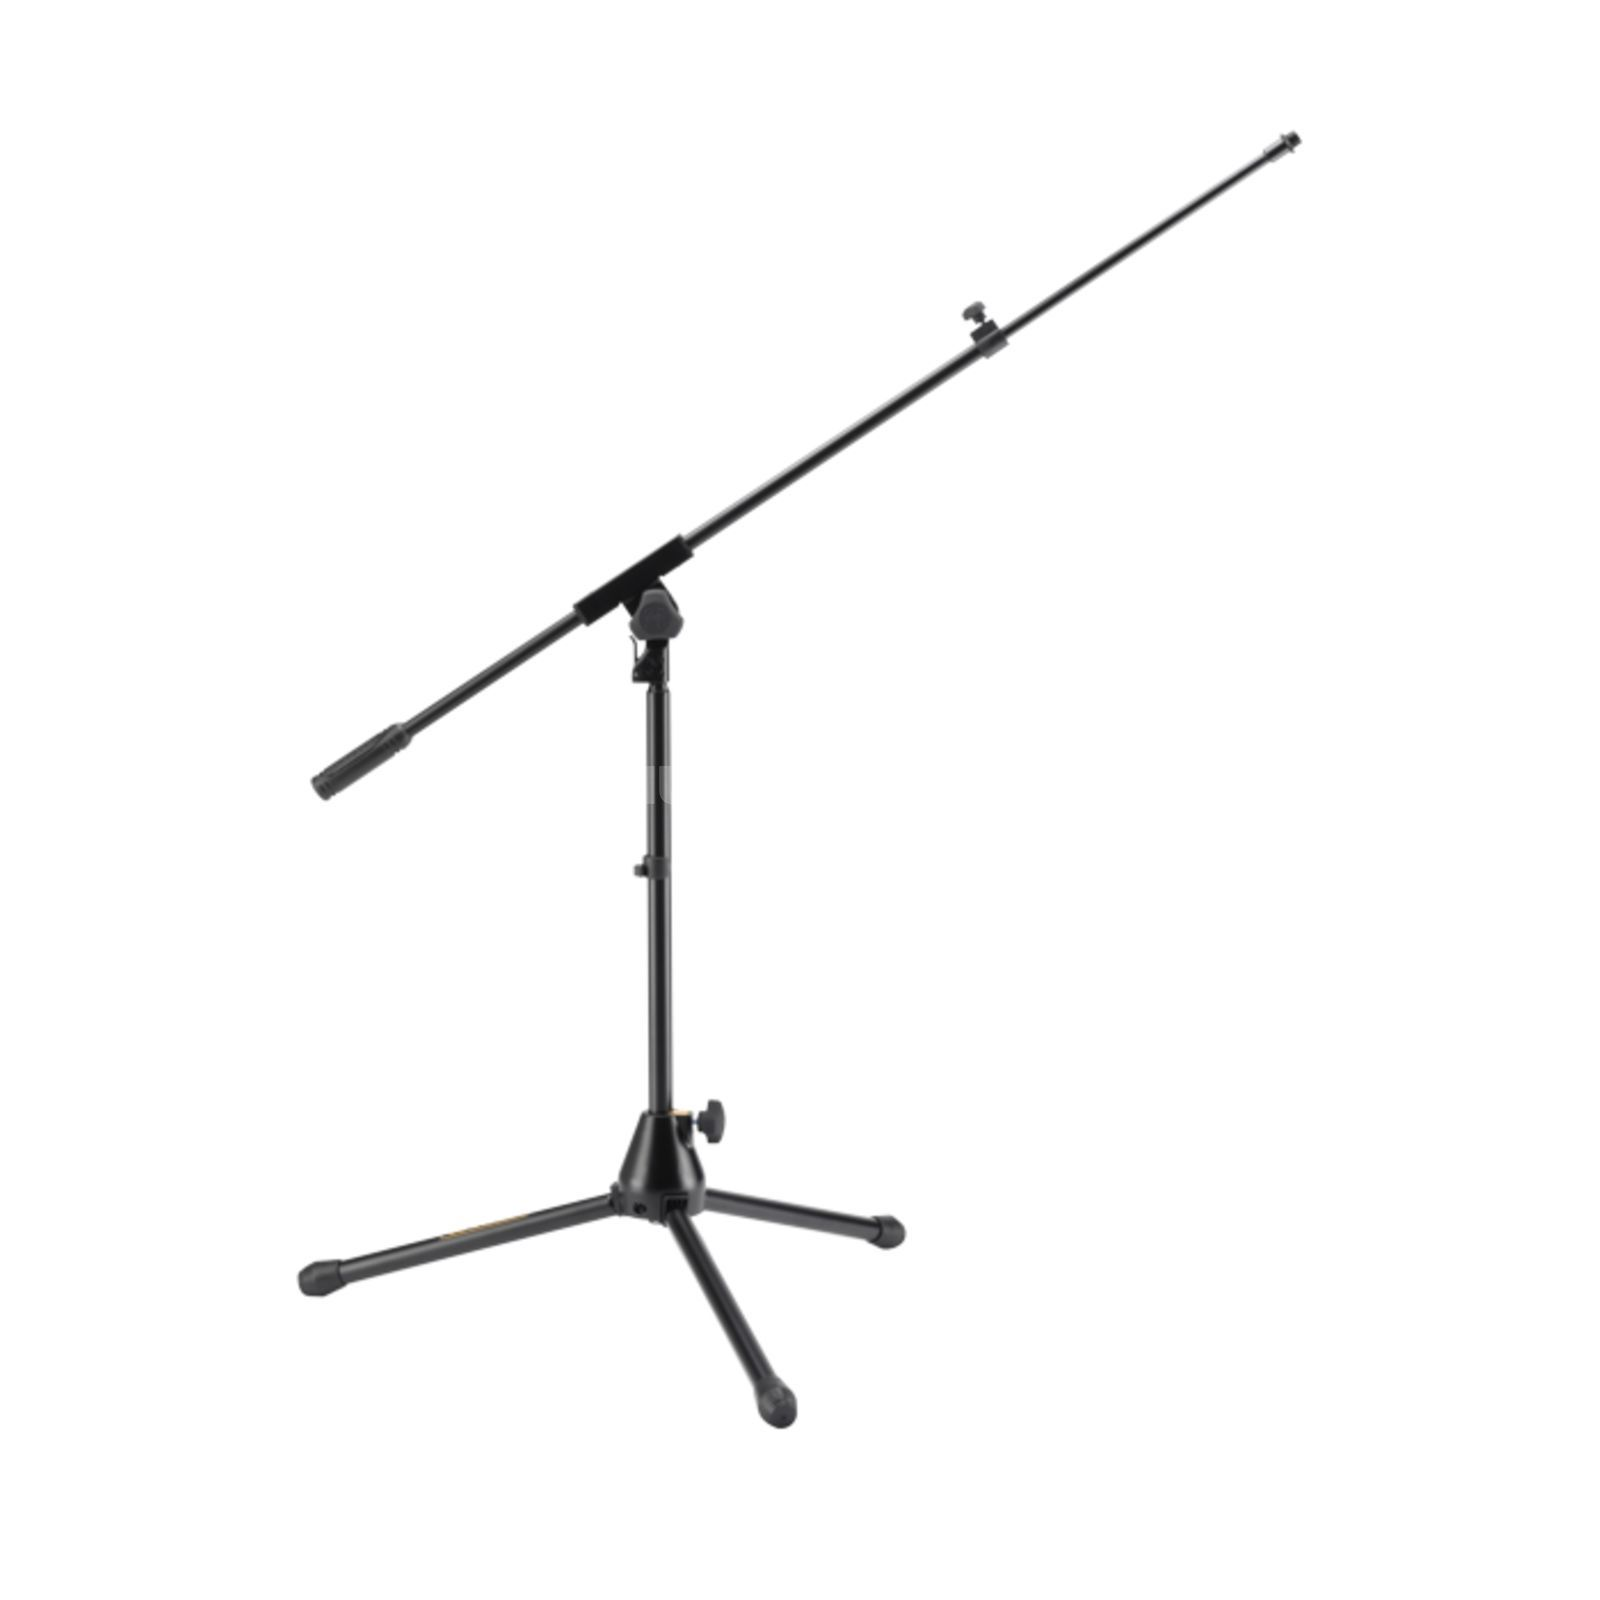 Hercules Stands HCMS-540B Microphone Stand low, with Boom, long Produktbillede